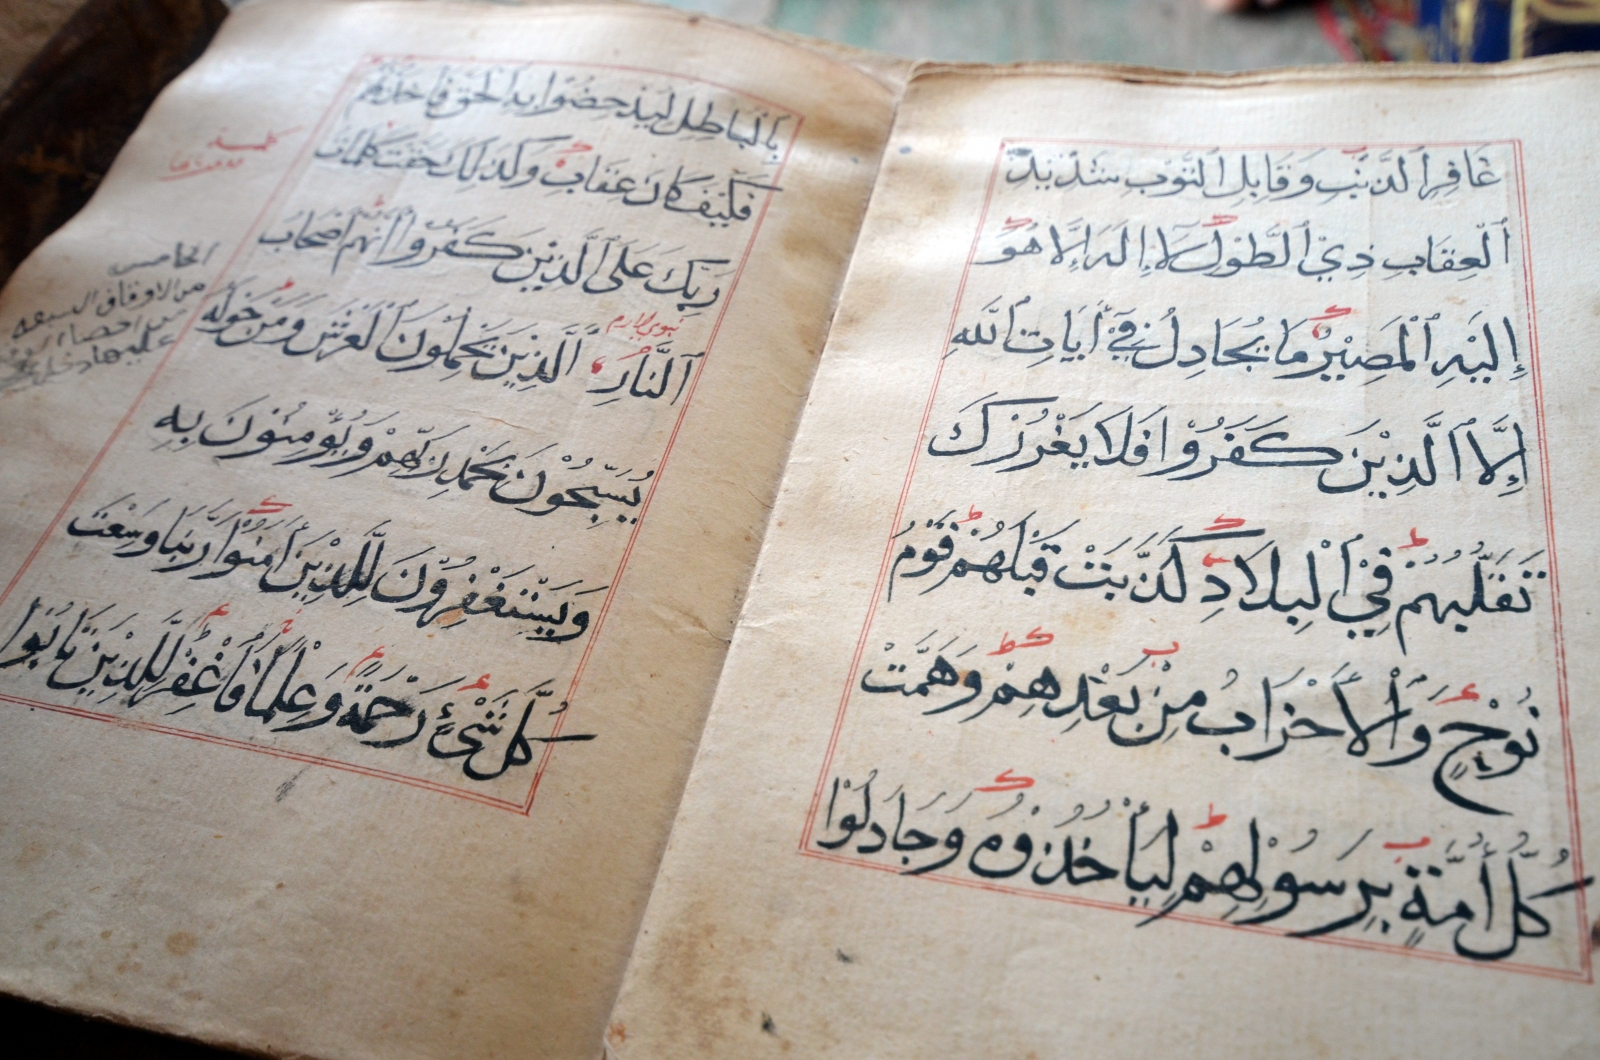 Koran with Arabic caligraphy